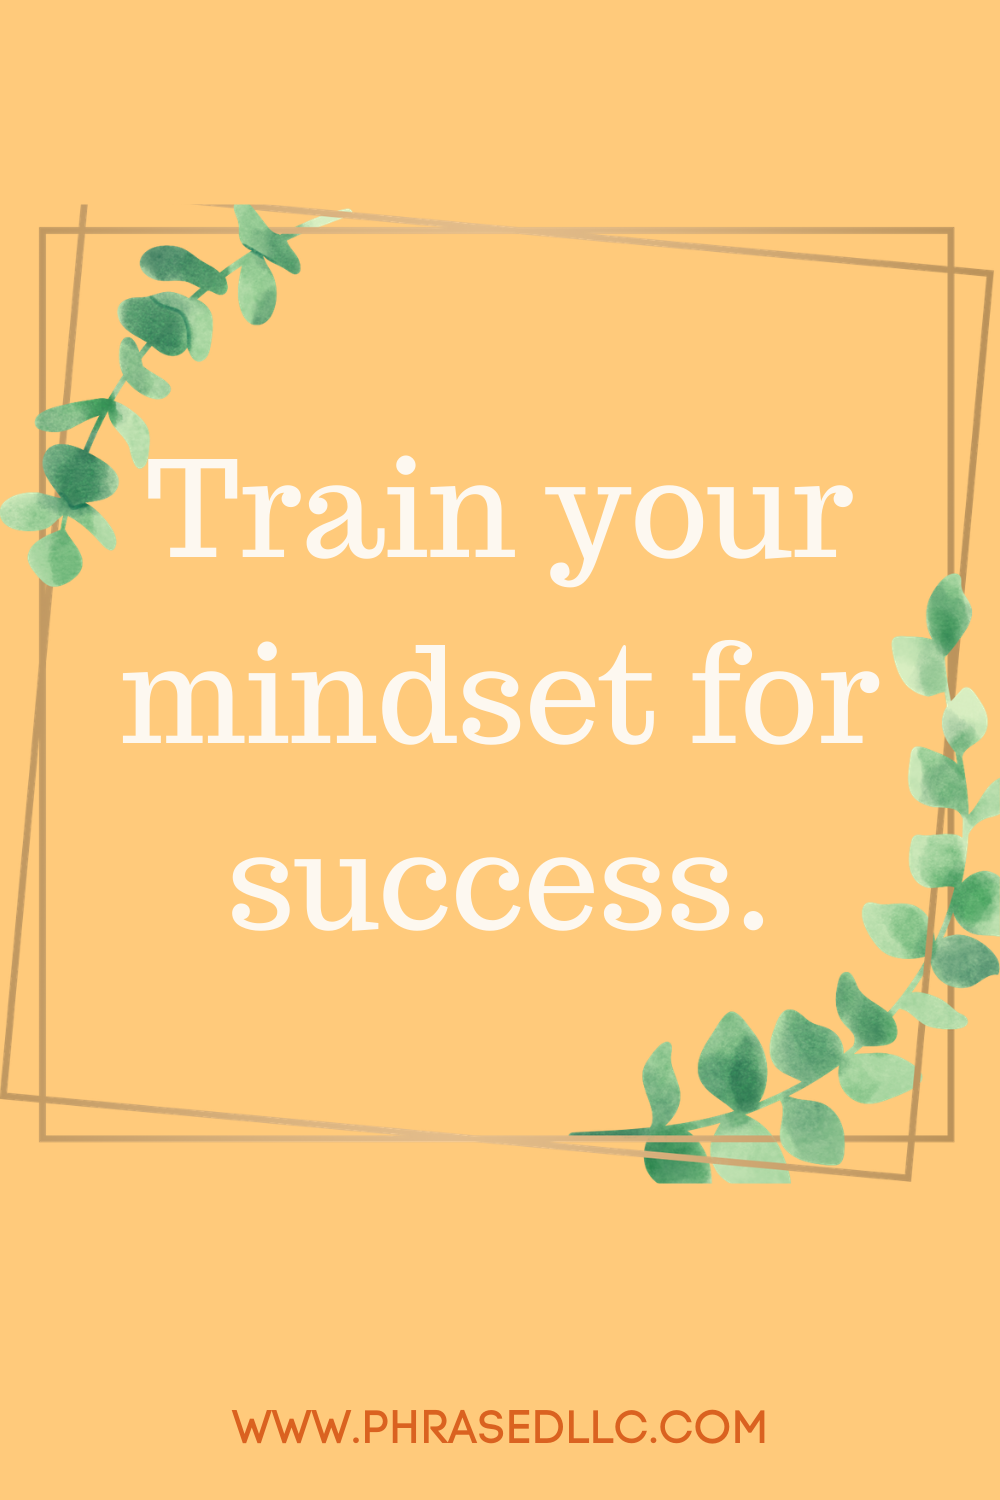 Short inspirational quotes on the importance of training your mindset for success.